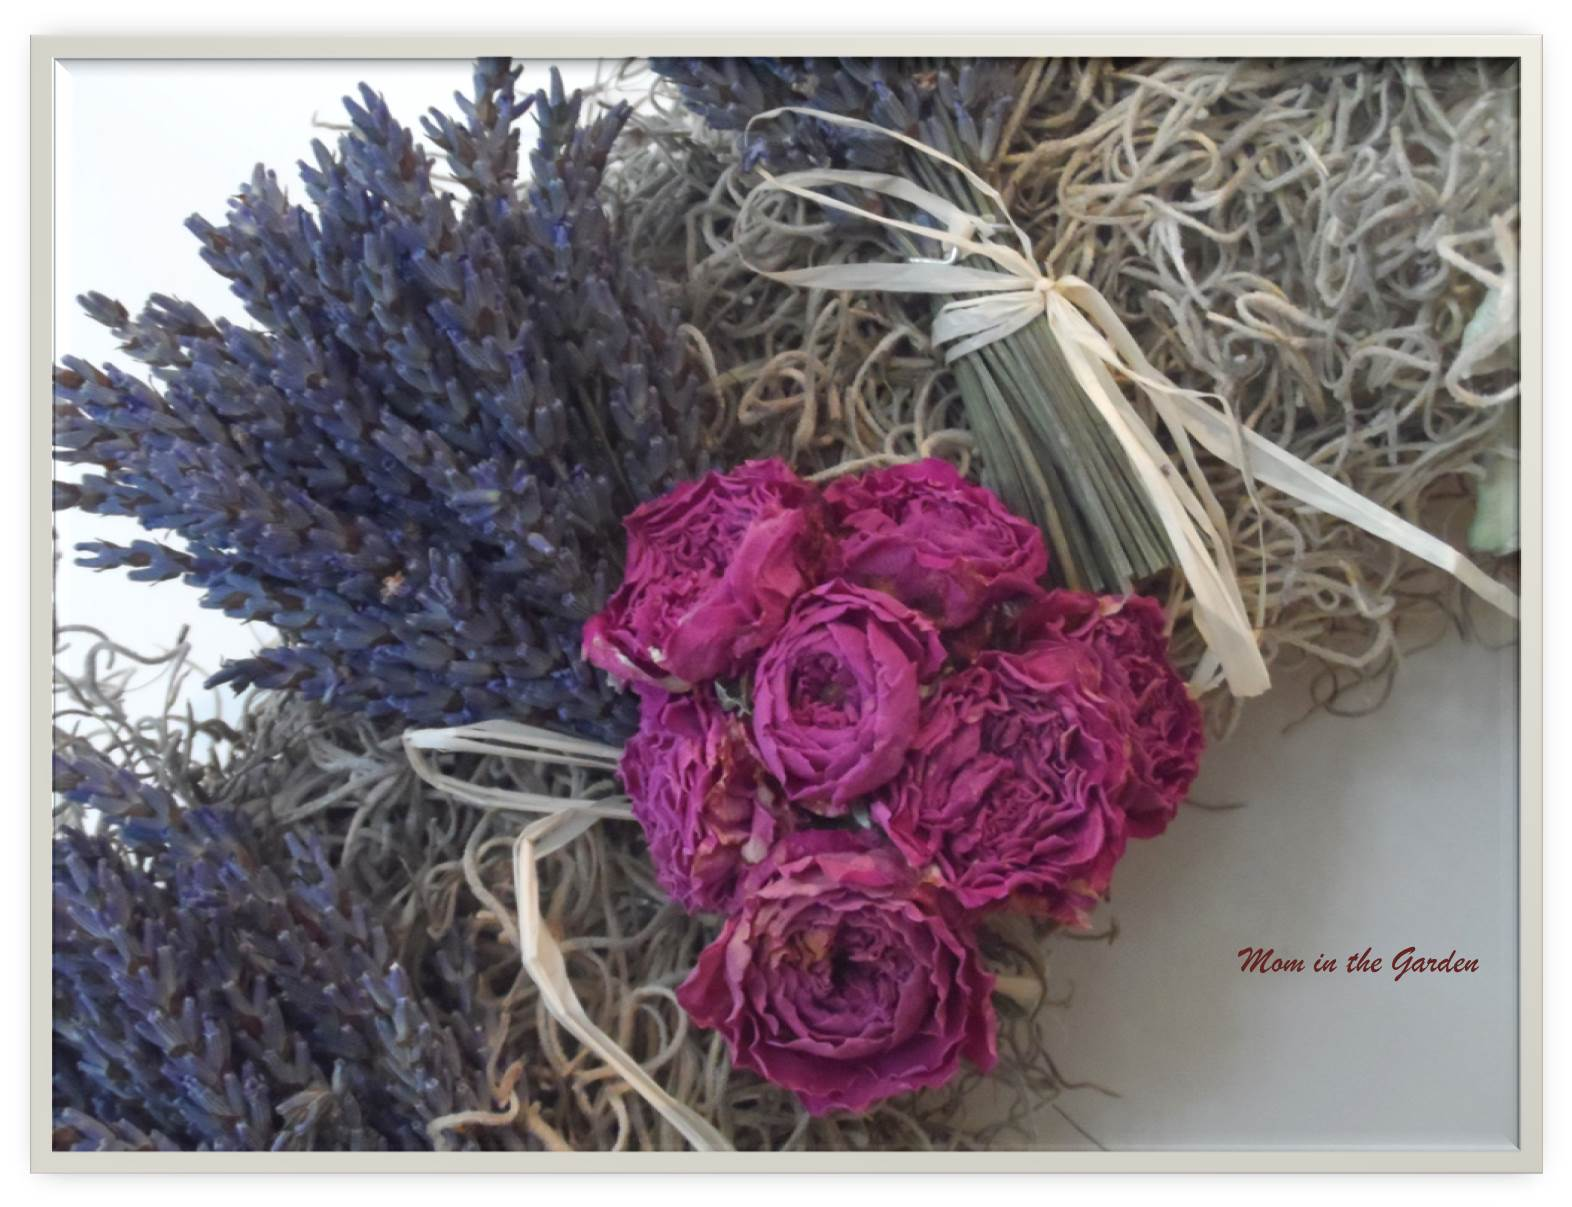 Roses and Lavender from the garden